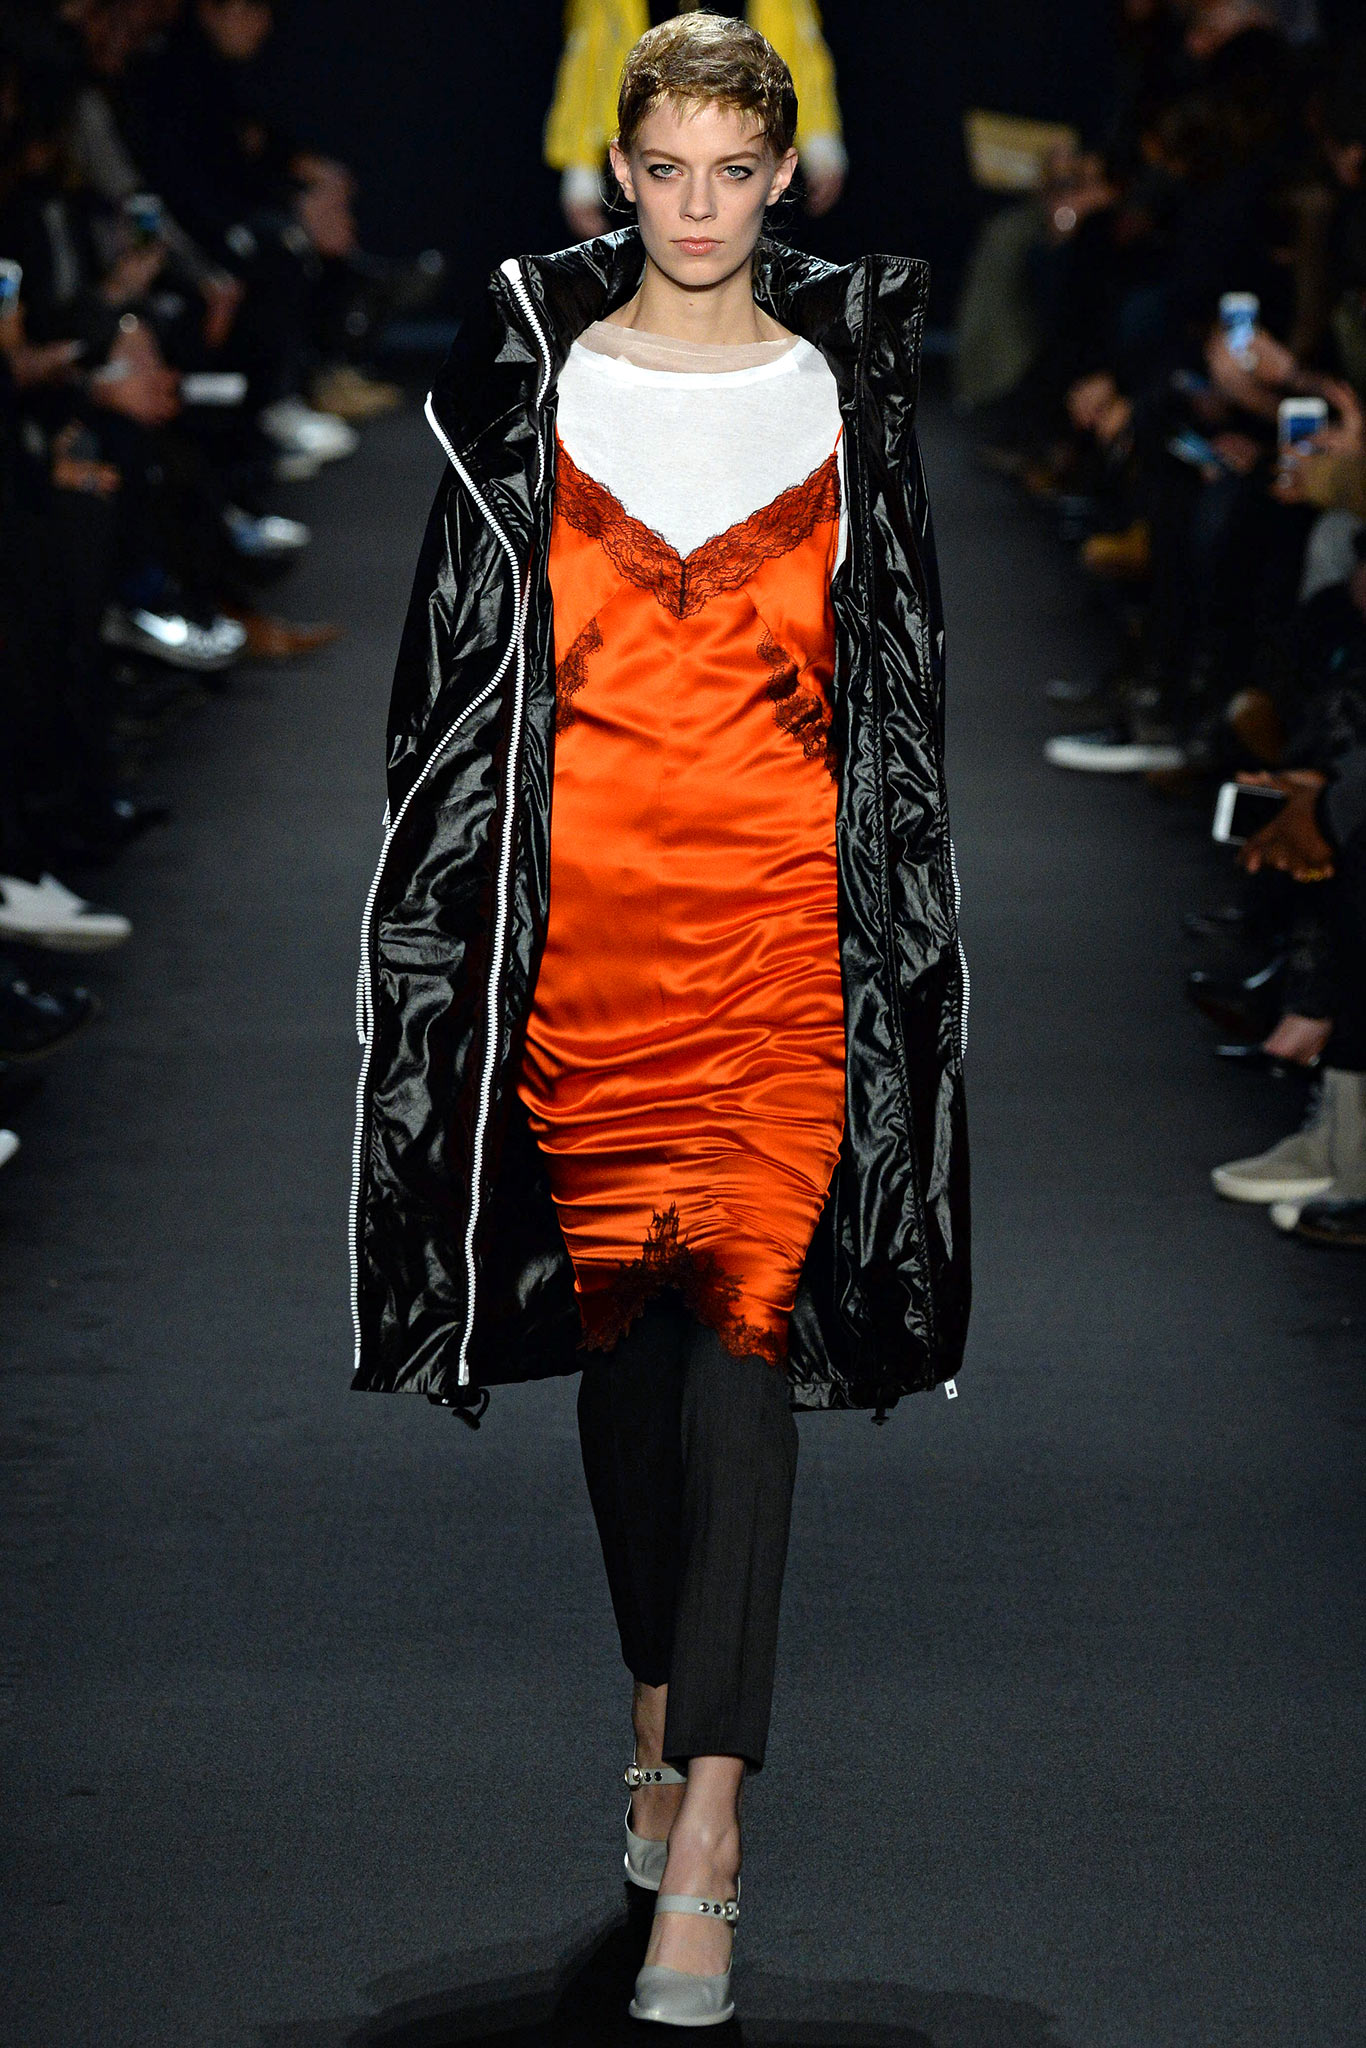 Rag & Bone Orange Dress Runway Fall 2015